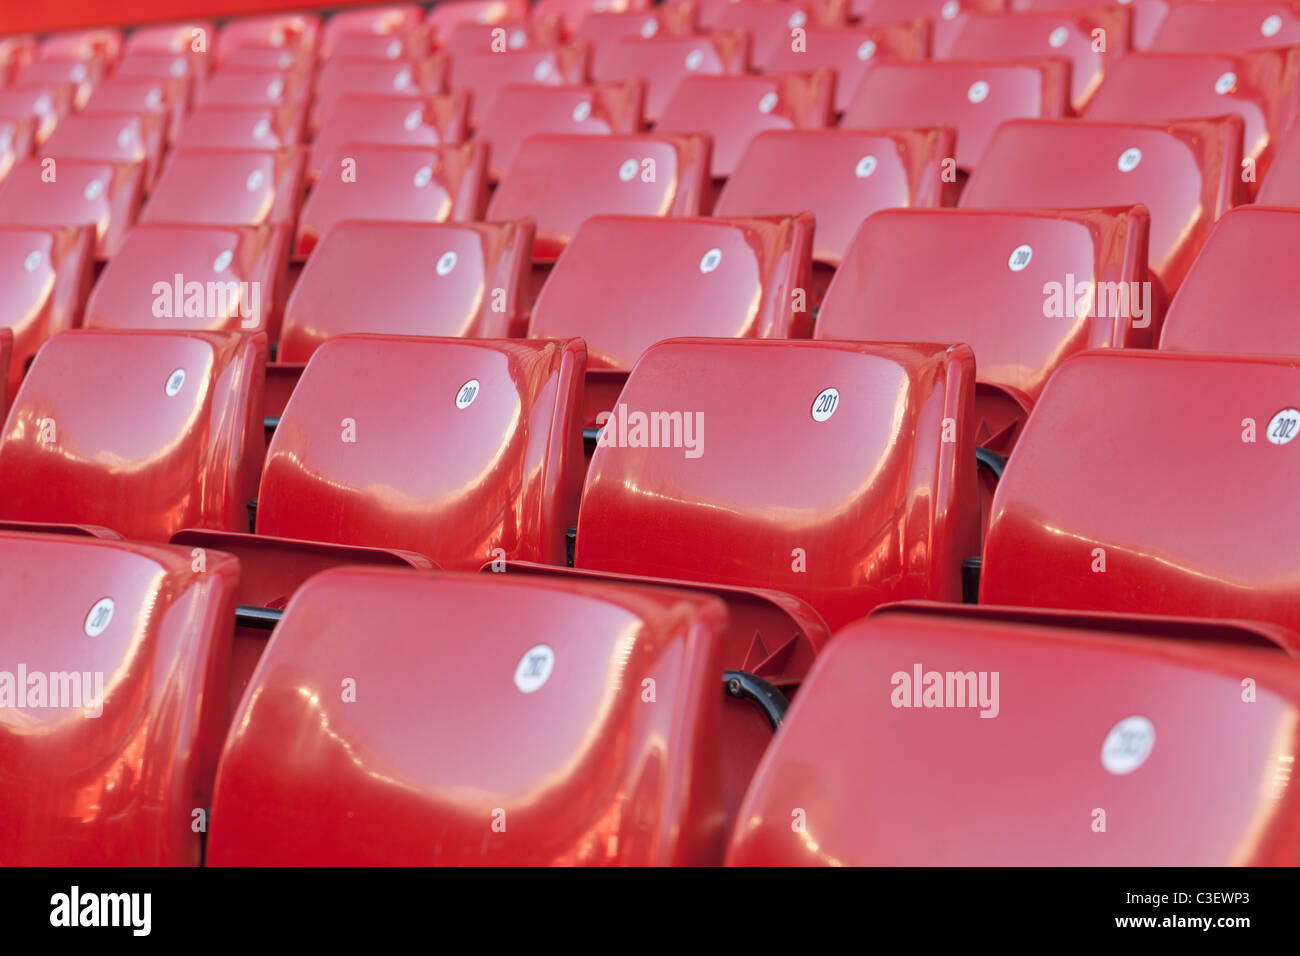 Empty seats at Old Trafford football stadium in Manchester, England - Stock Image